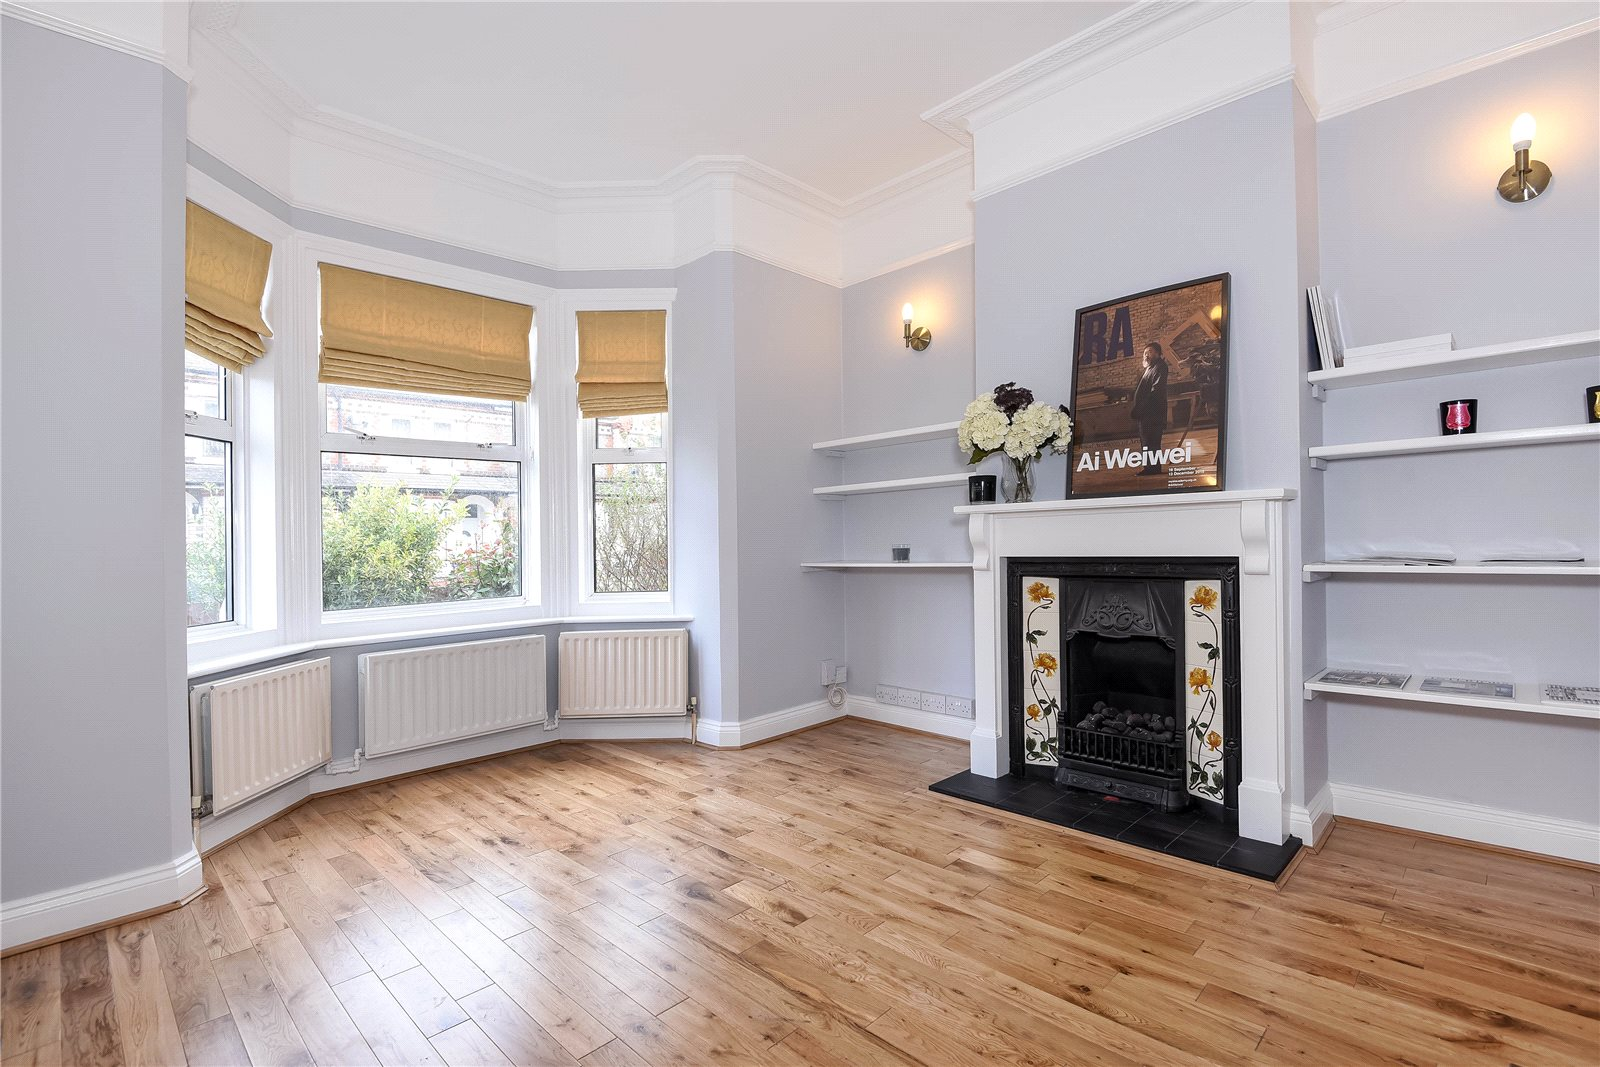 4 Bedrooms Semi Detached House for rent in Liverpool Road, Reading, Berkshire, RG1